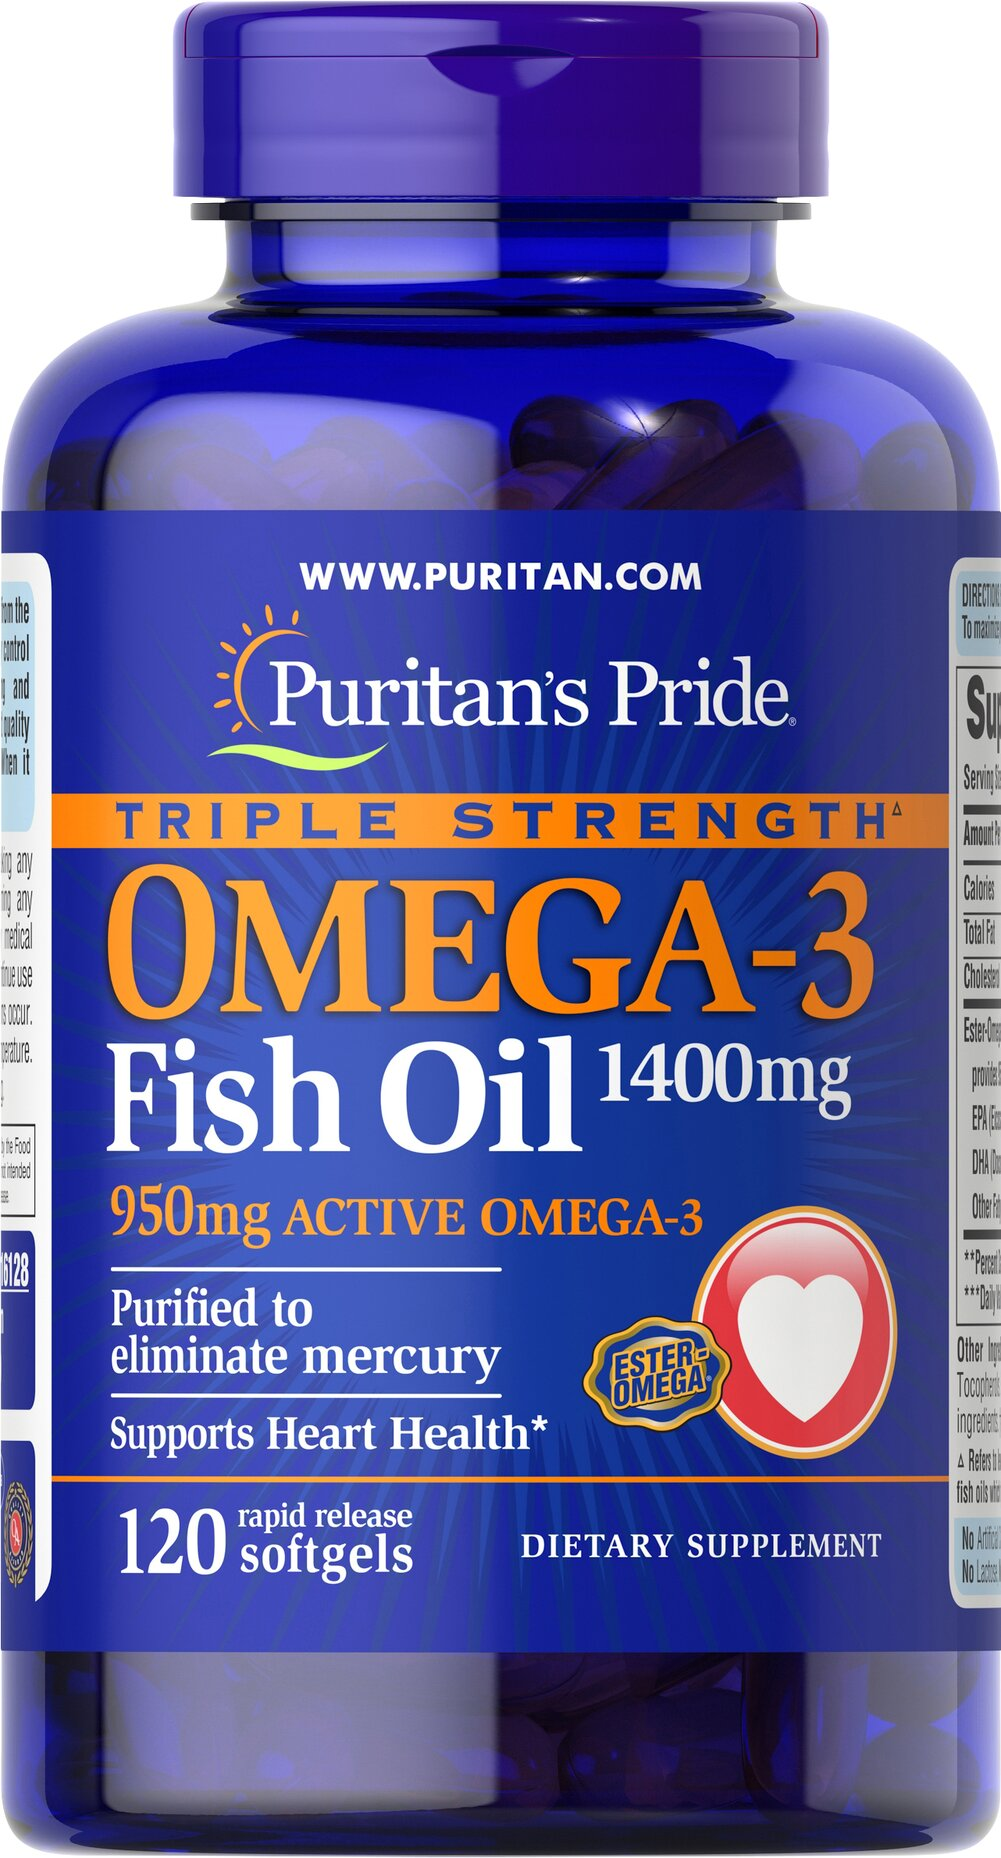 Triple Strength Omega-3 Fish Oil 1360 mg <p><strong>Purified to Eliminate Mercury</strong></p><p>Contains 950 mg of active Omega-3 per softgel — our highest potency! </p> 120 Softgels 1360 mg $38.99